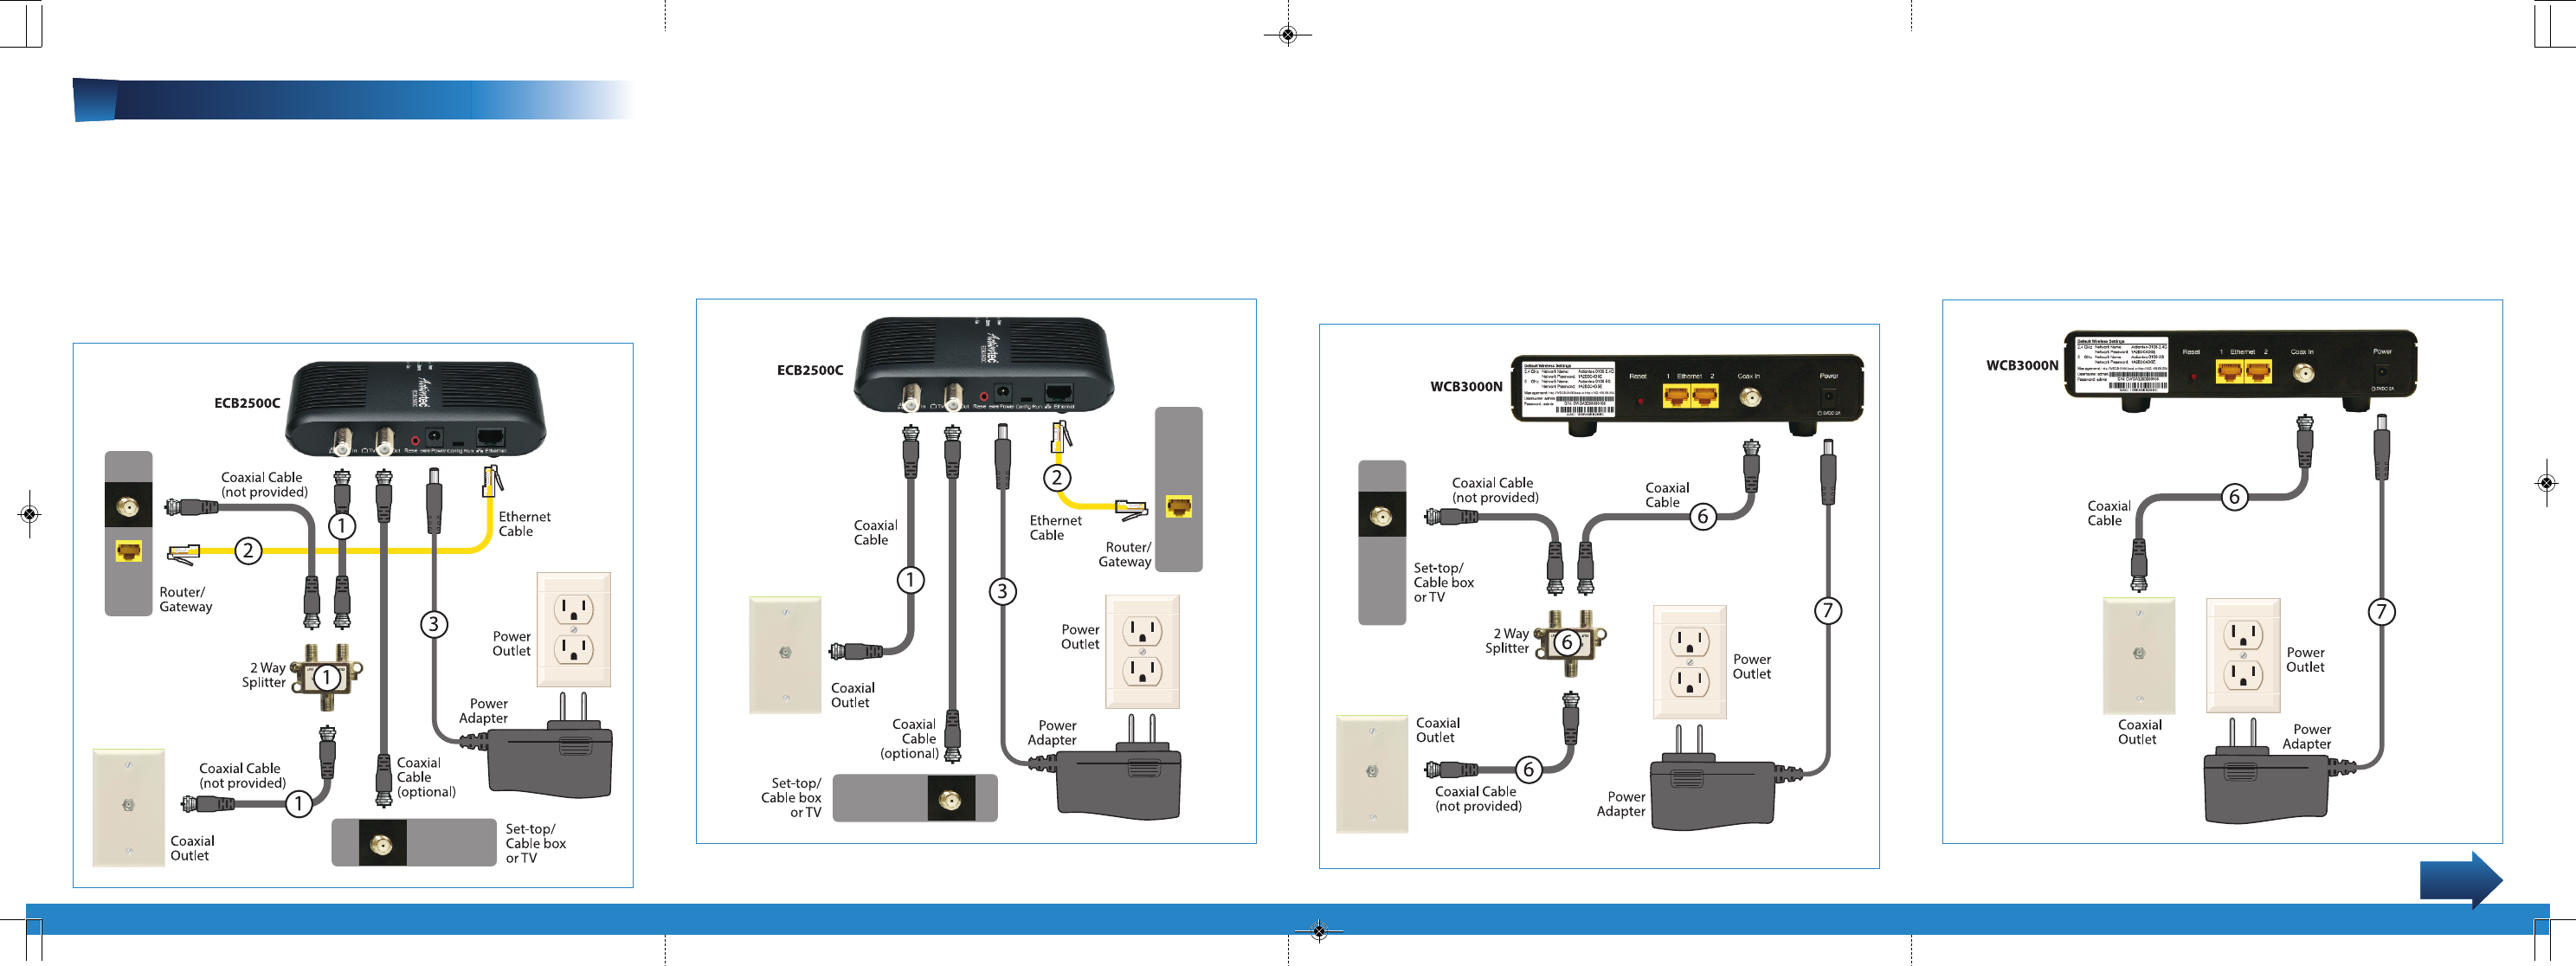 Actiontec Wcb3000N Quick Start Guide Wireless Network Extender KitUserManual.wiki